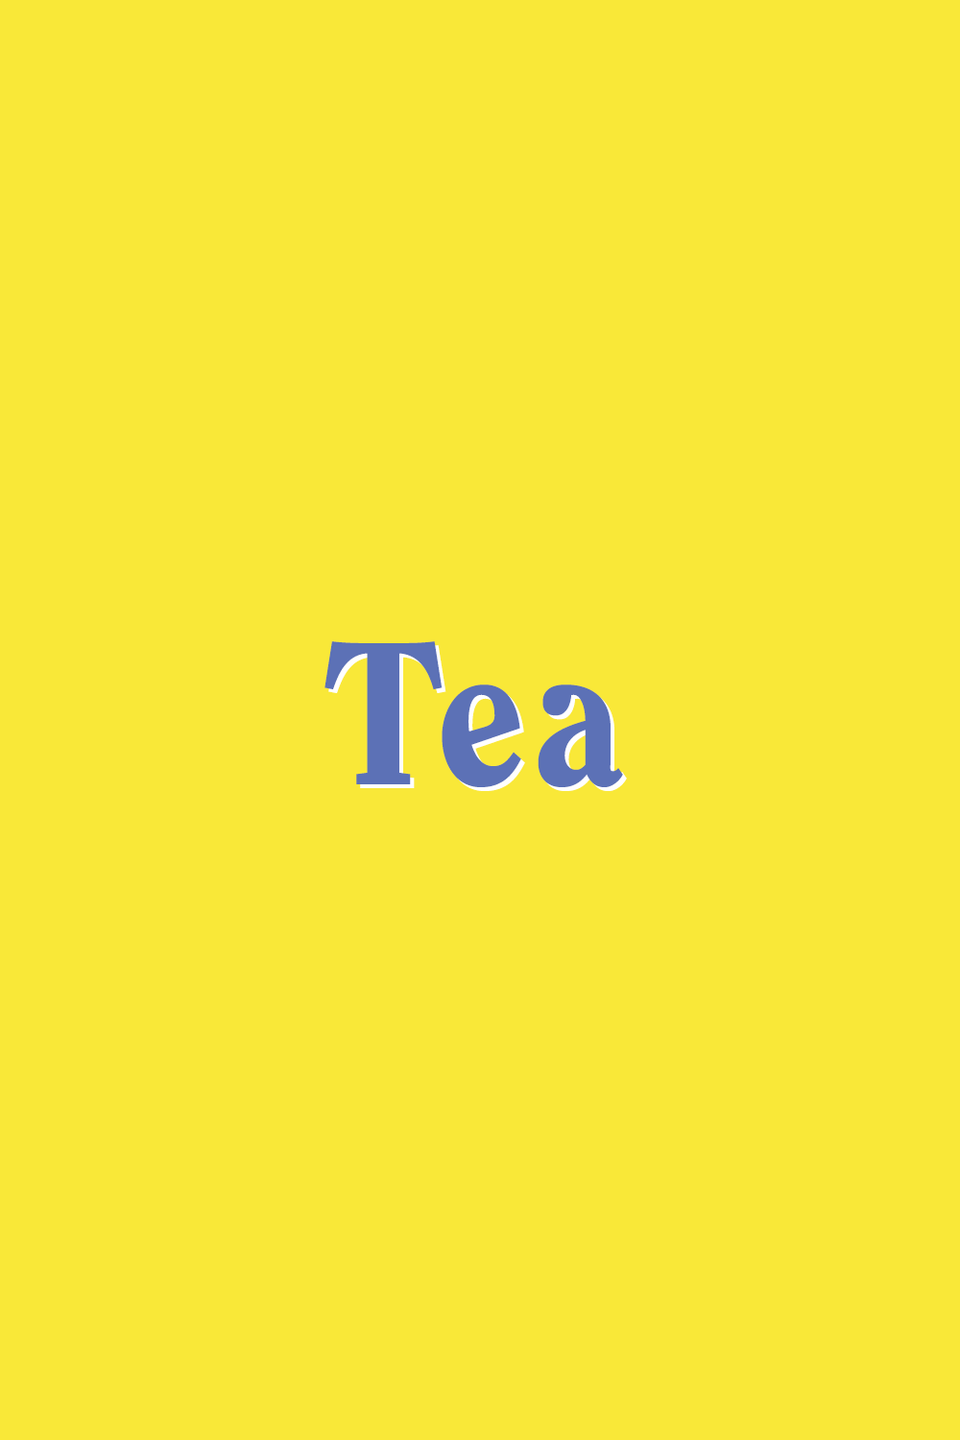 "<p>Tea is all about exchanging hot gossip. You can get tea, <a href=""https://www.oprahdaily.com/entertainment/tv-movies/a23080598/season-3-dear-white-people/"" rel=""nofollow noopener"" target=""_blank"" data-ylk=""slk:spill tea"" class=""link rapid-noclick-resp"">spill tea</a>, and give tea. Often, the term is simply interchangeable with the letter ""T."" This slang term—like so many on this list—derives from '80s and '90s <a href=""https://www.oprahdaily.com/life/a23601818/queer-cultural-appropriation-definition/"" rel=""nofollow noopener"" target=""_blank"" data-ylk=""slk:ball culture"" class=""link rapid-noclick-resp"">ball culture</a>, which is where LGBTQ people performed in drag competitions to celebrate their queerness. John Berendt's 1999 <em><a href=""https://www.amazon.com/Midnight-Garden-Good-Evil-Savannah/dp/0679751521?tag=syn-yahoo-20&ascsubtag=%5Bartid%7C10070.g.36318291%5Bsrc%7Cyahoo-us"" rel=""nofollow noopener"" target=""_blank"" data-ylk=""slk:Midnight in the Garden of Good and Evil"" class=""link rapid-noclick-resp"">Midnight in the Garden of Good and Evil</a></em> is <a href=""https://www.merriam-webster.com/words-at-play/tea-slang-meaning-origin"" rel=""nofollow noopener"" target=""_blank"" data-ylk=""slk:often cited"" class=""link rapid-noclick-resp"">often cited</a> for its early use of the term as well. </p>"